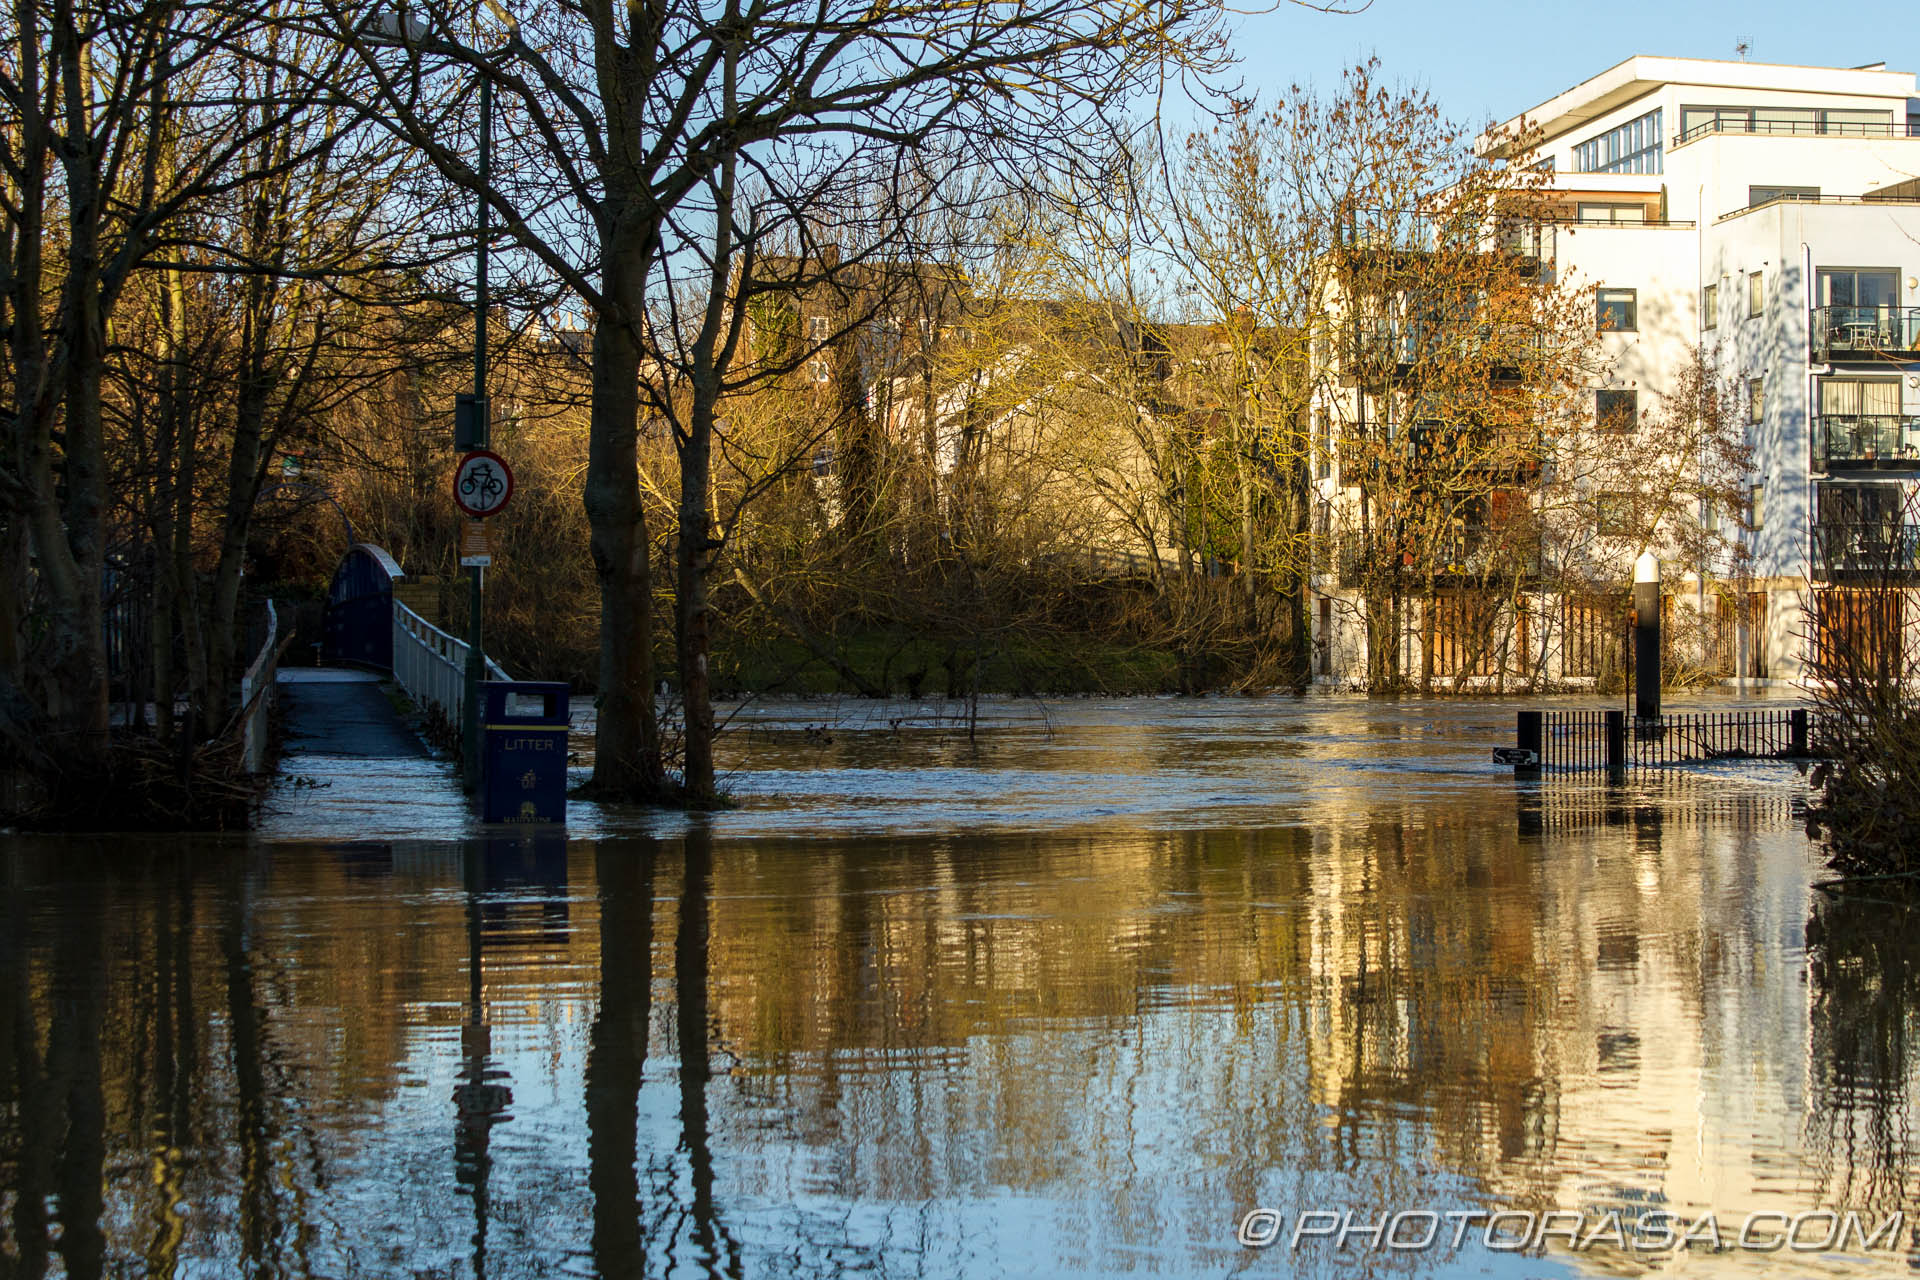 http://photorasa.com/wet-xmas-maidstone-river-medway-floods-town-centre/river-medway-flooded-at-tovil/